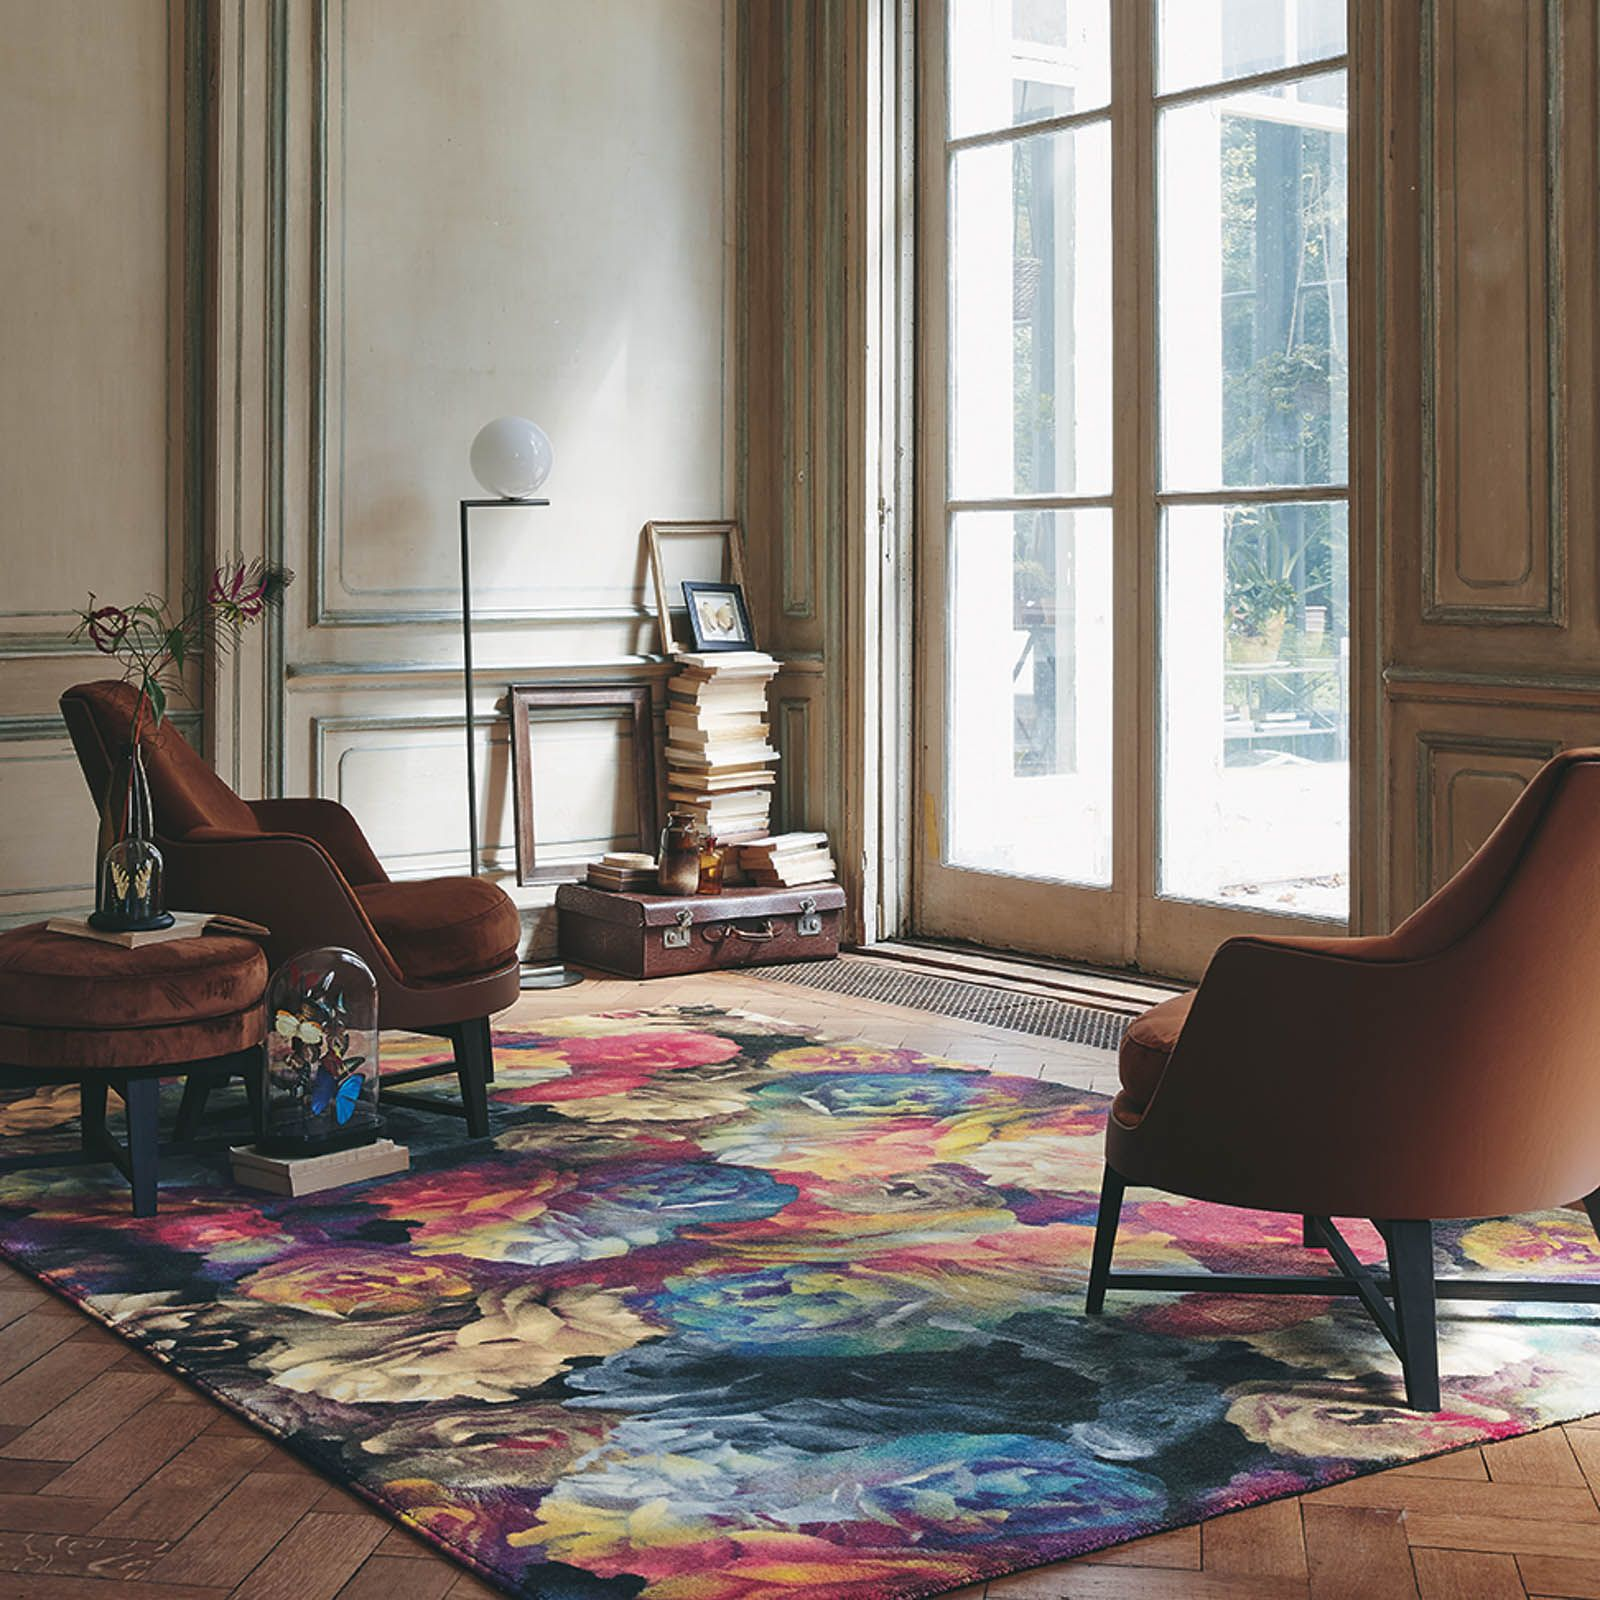 A bloom of animated flowers floods this interior with character technibloom rugs 58305 by ted baker free uk delivery the rug seller baanklon Images